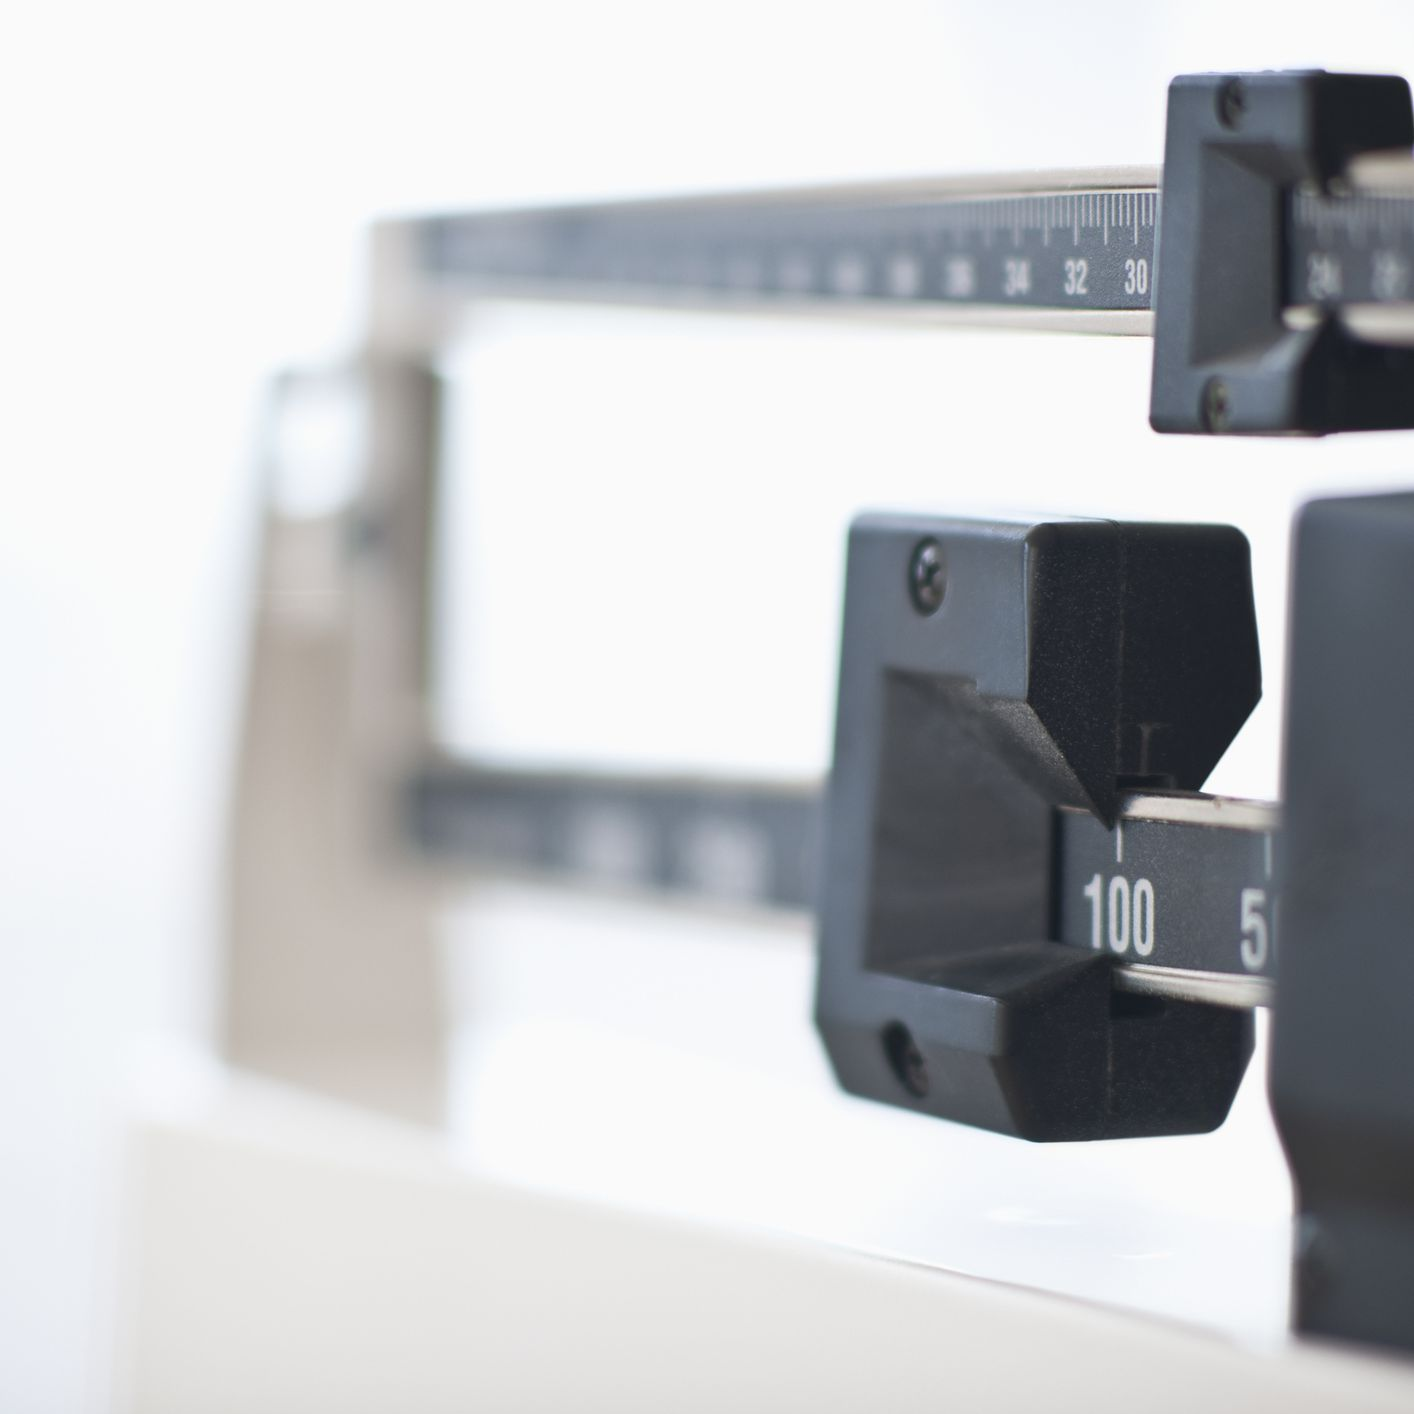 4 Ways to Track Your Weight Loss Progress